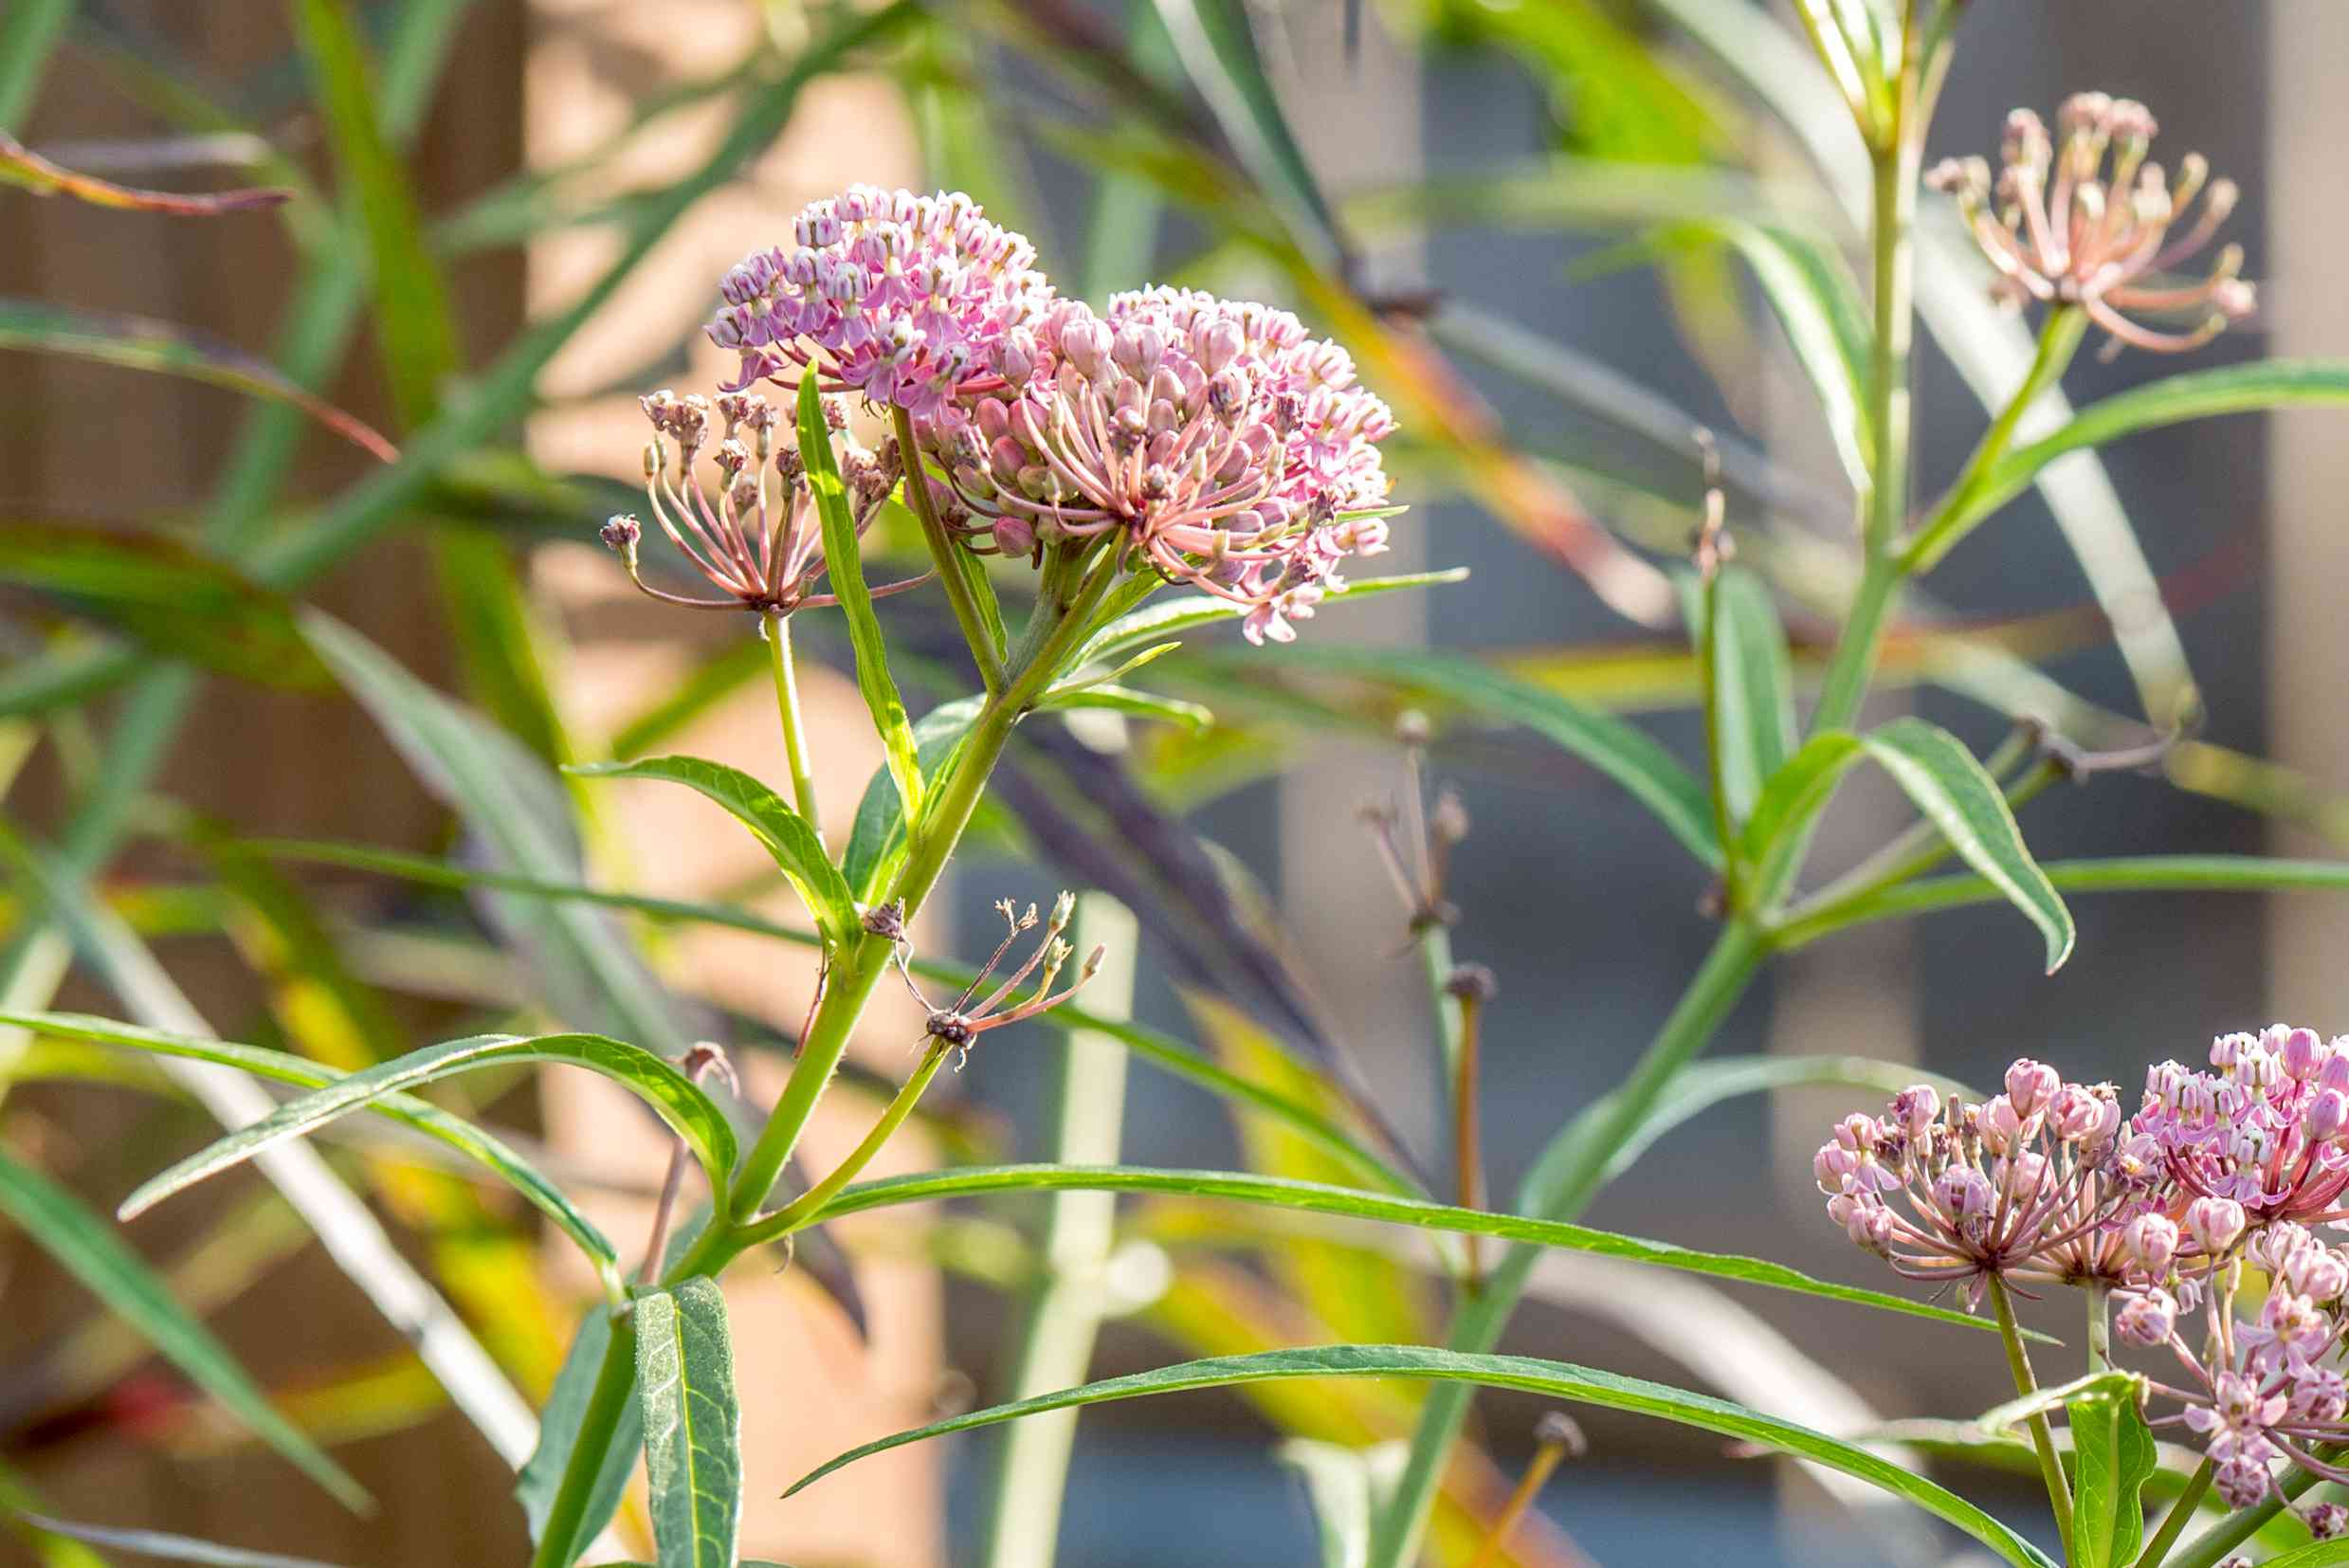 Swamp milkweed plant with small pink flowers and buds clustered at end of stems